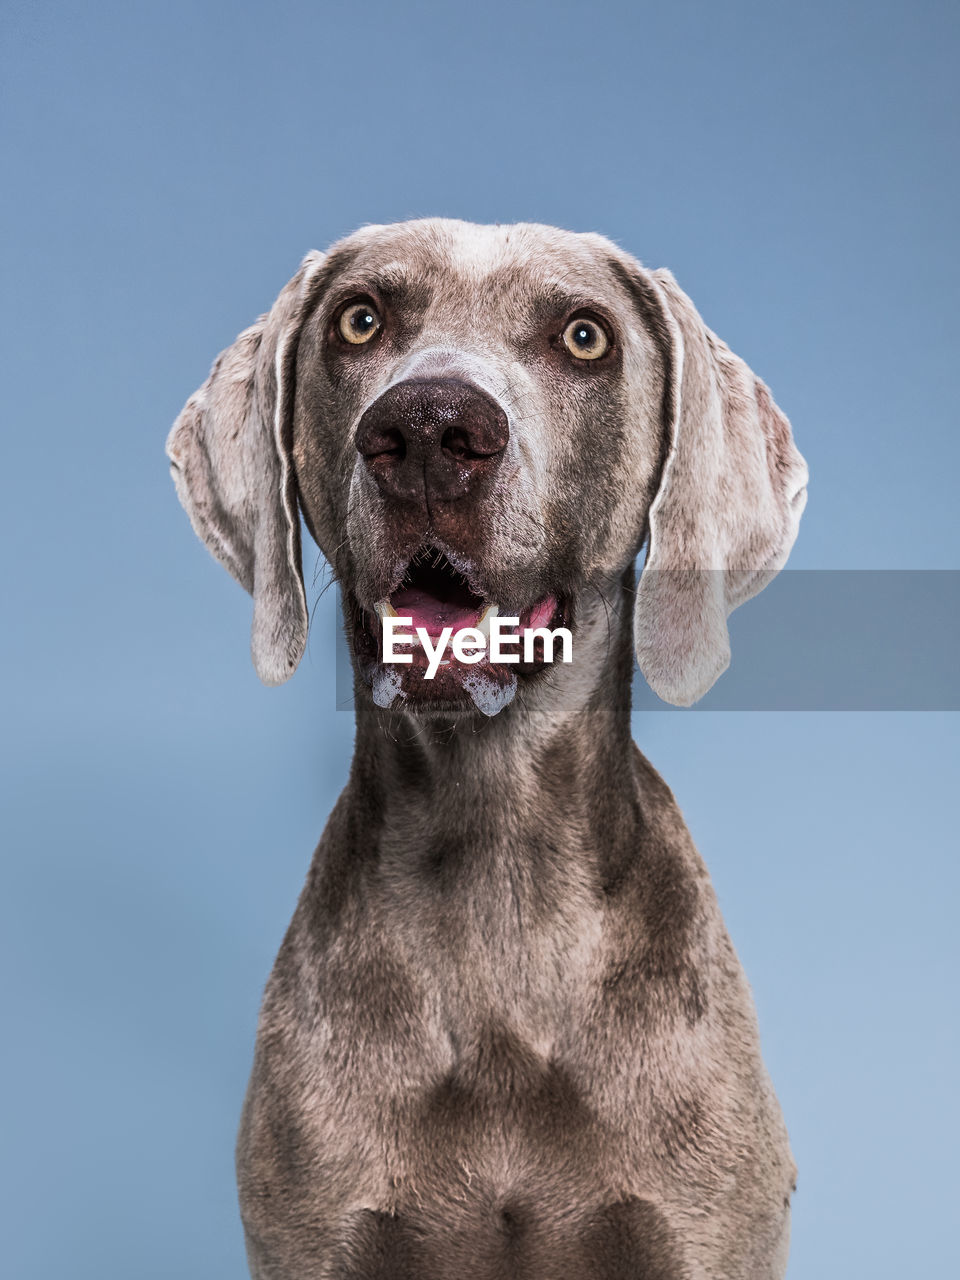 canine, dog, one animal, domestic, domestic animals, pets, mammal, animal themes, animal, portrait, vertebrate, looking at camera, weimaraner, no people, sky, blue, close-up, looking, front view, studio shot, blue background, mouth open